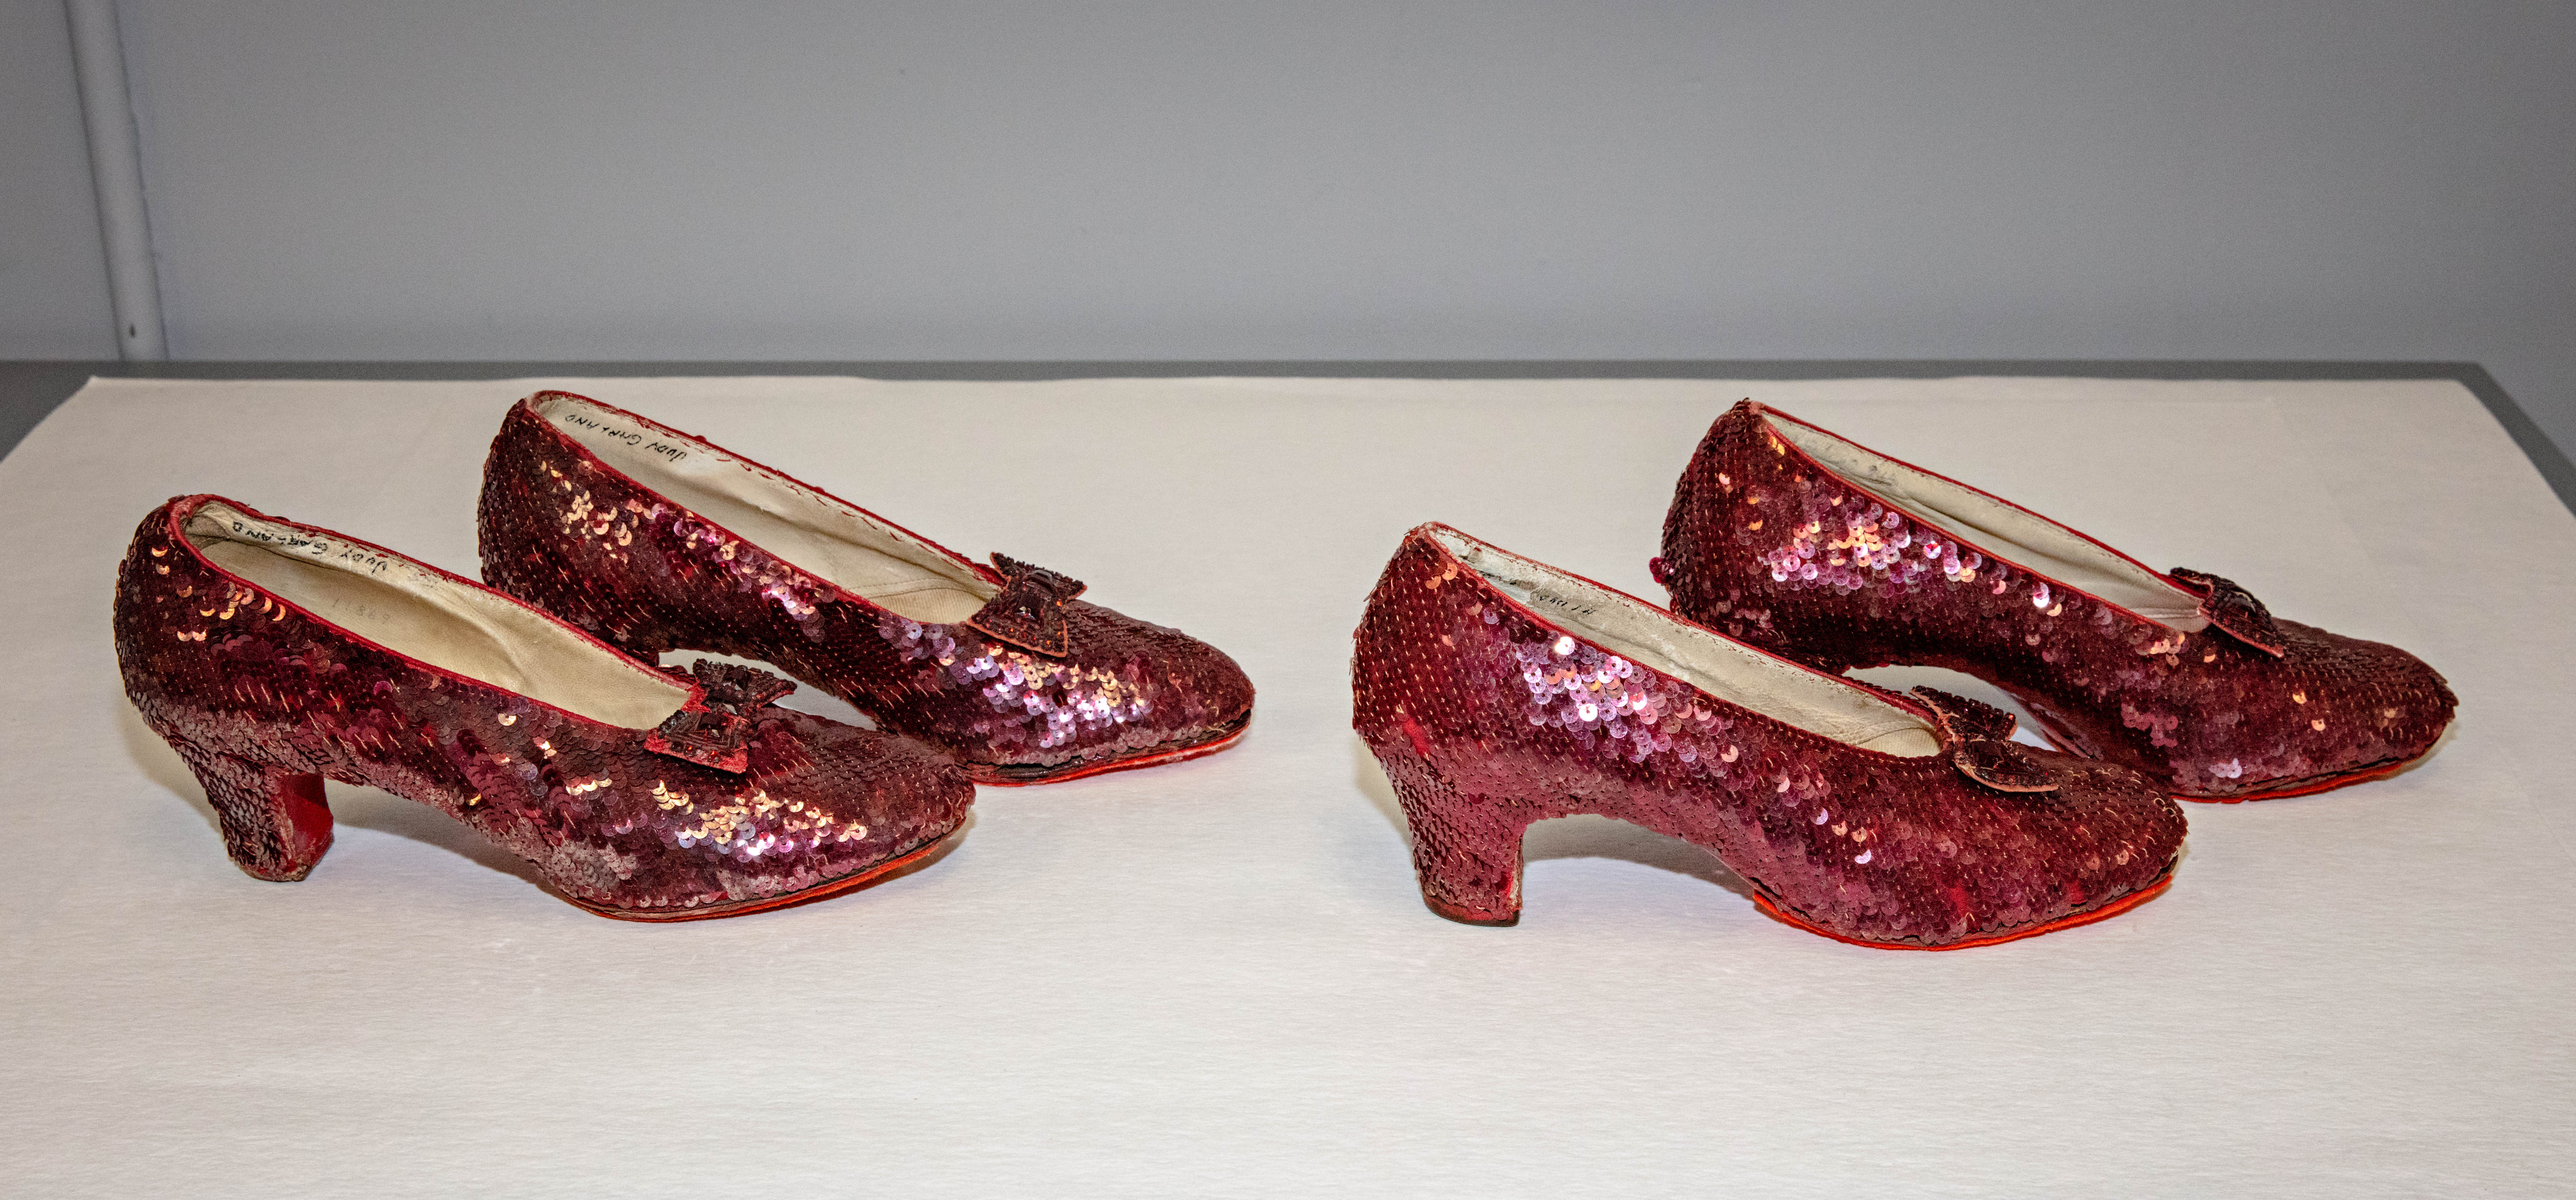 Two pairs of red shoes covered in red sequins.